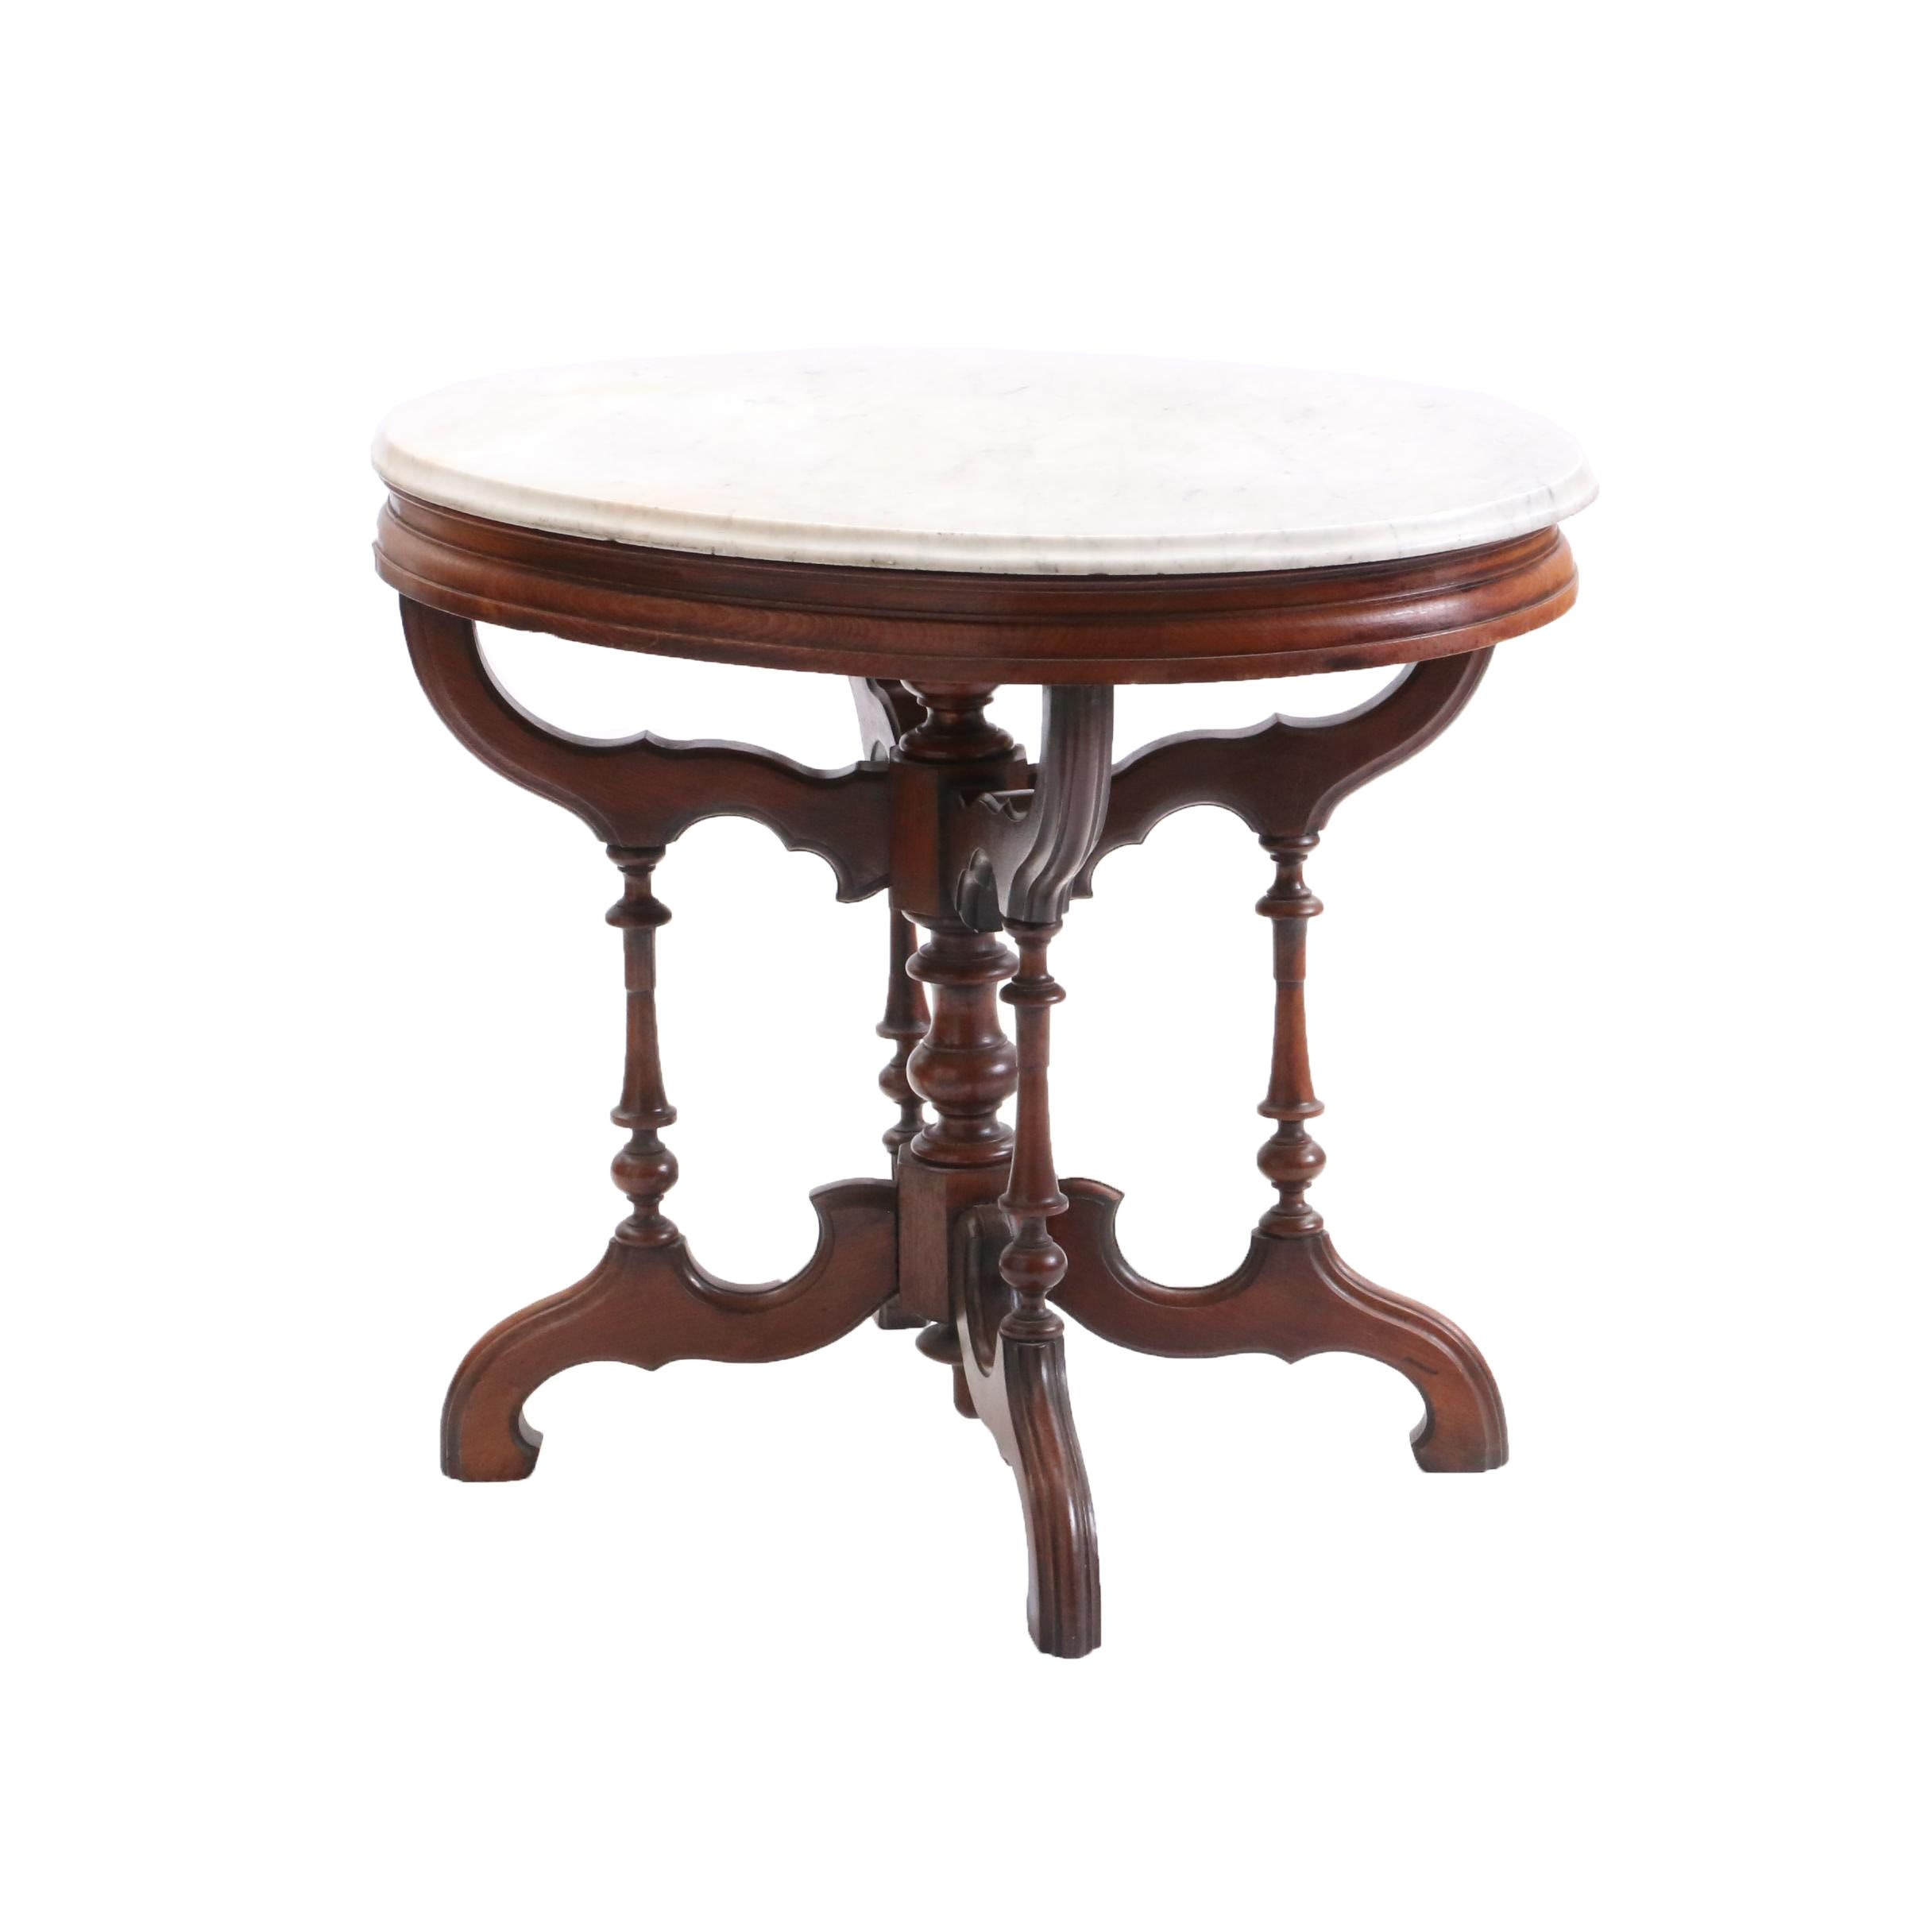 Victorian Marble Top Occasional Table, Late 19th Century